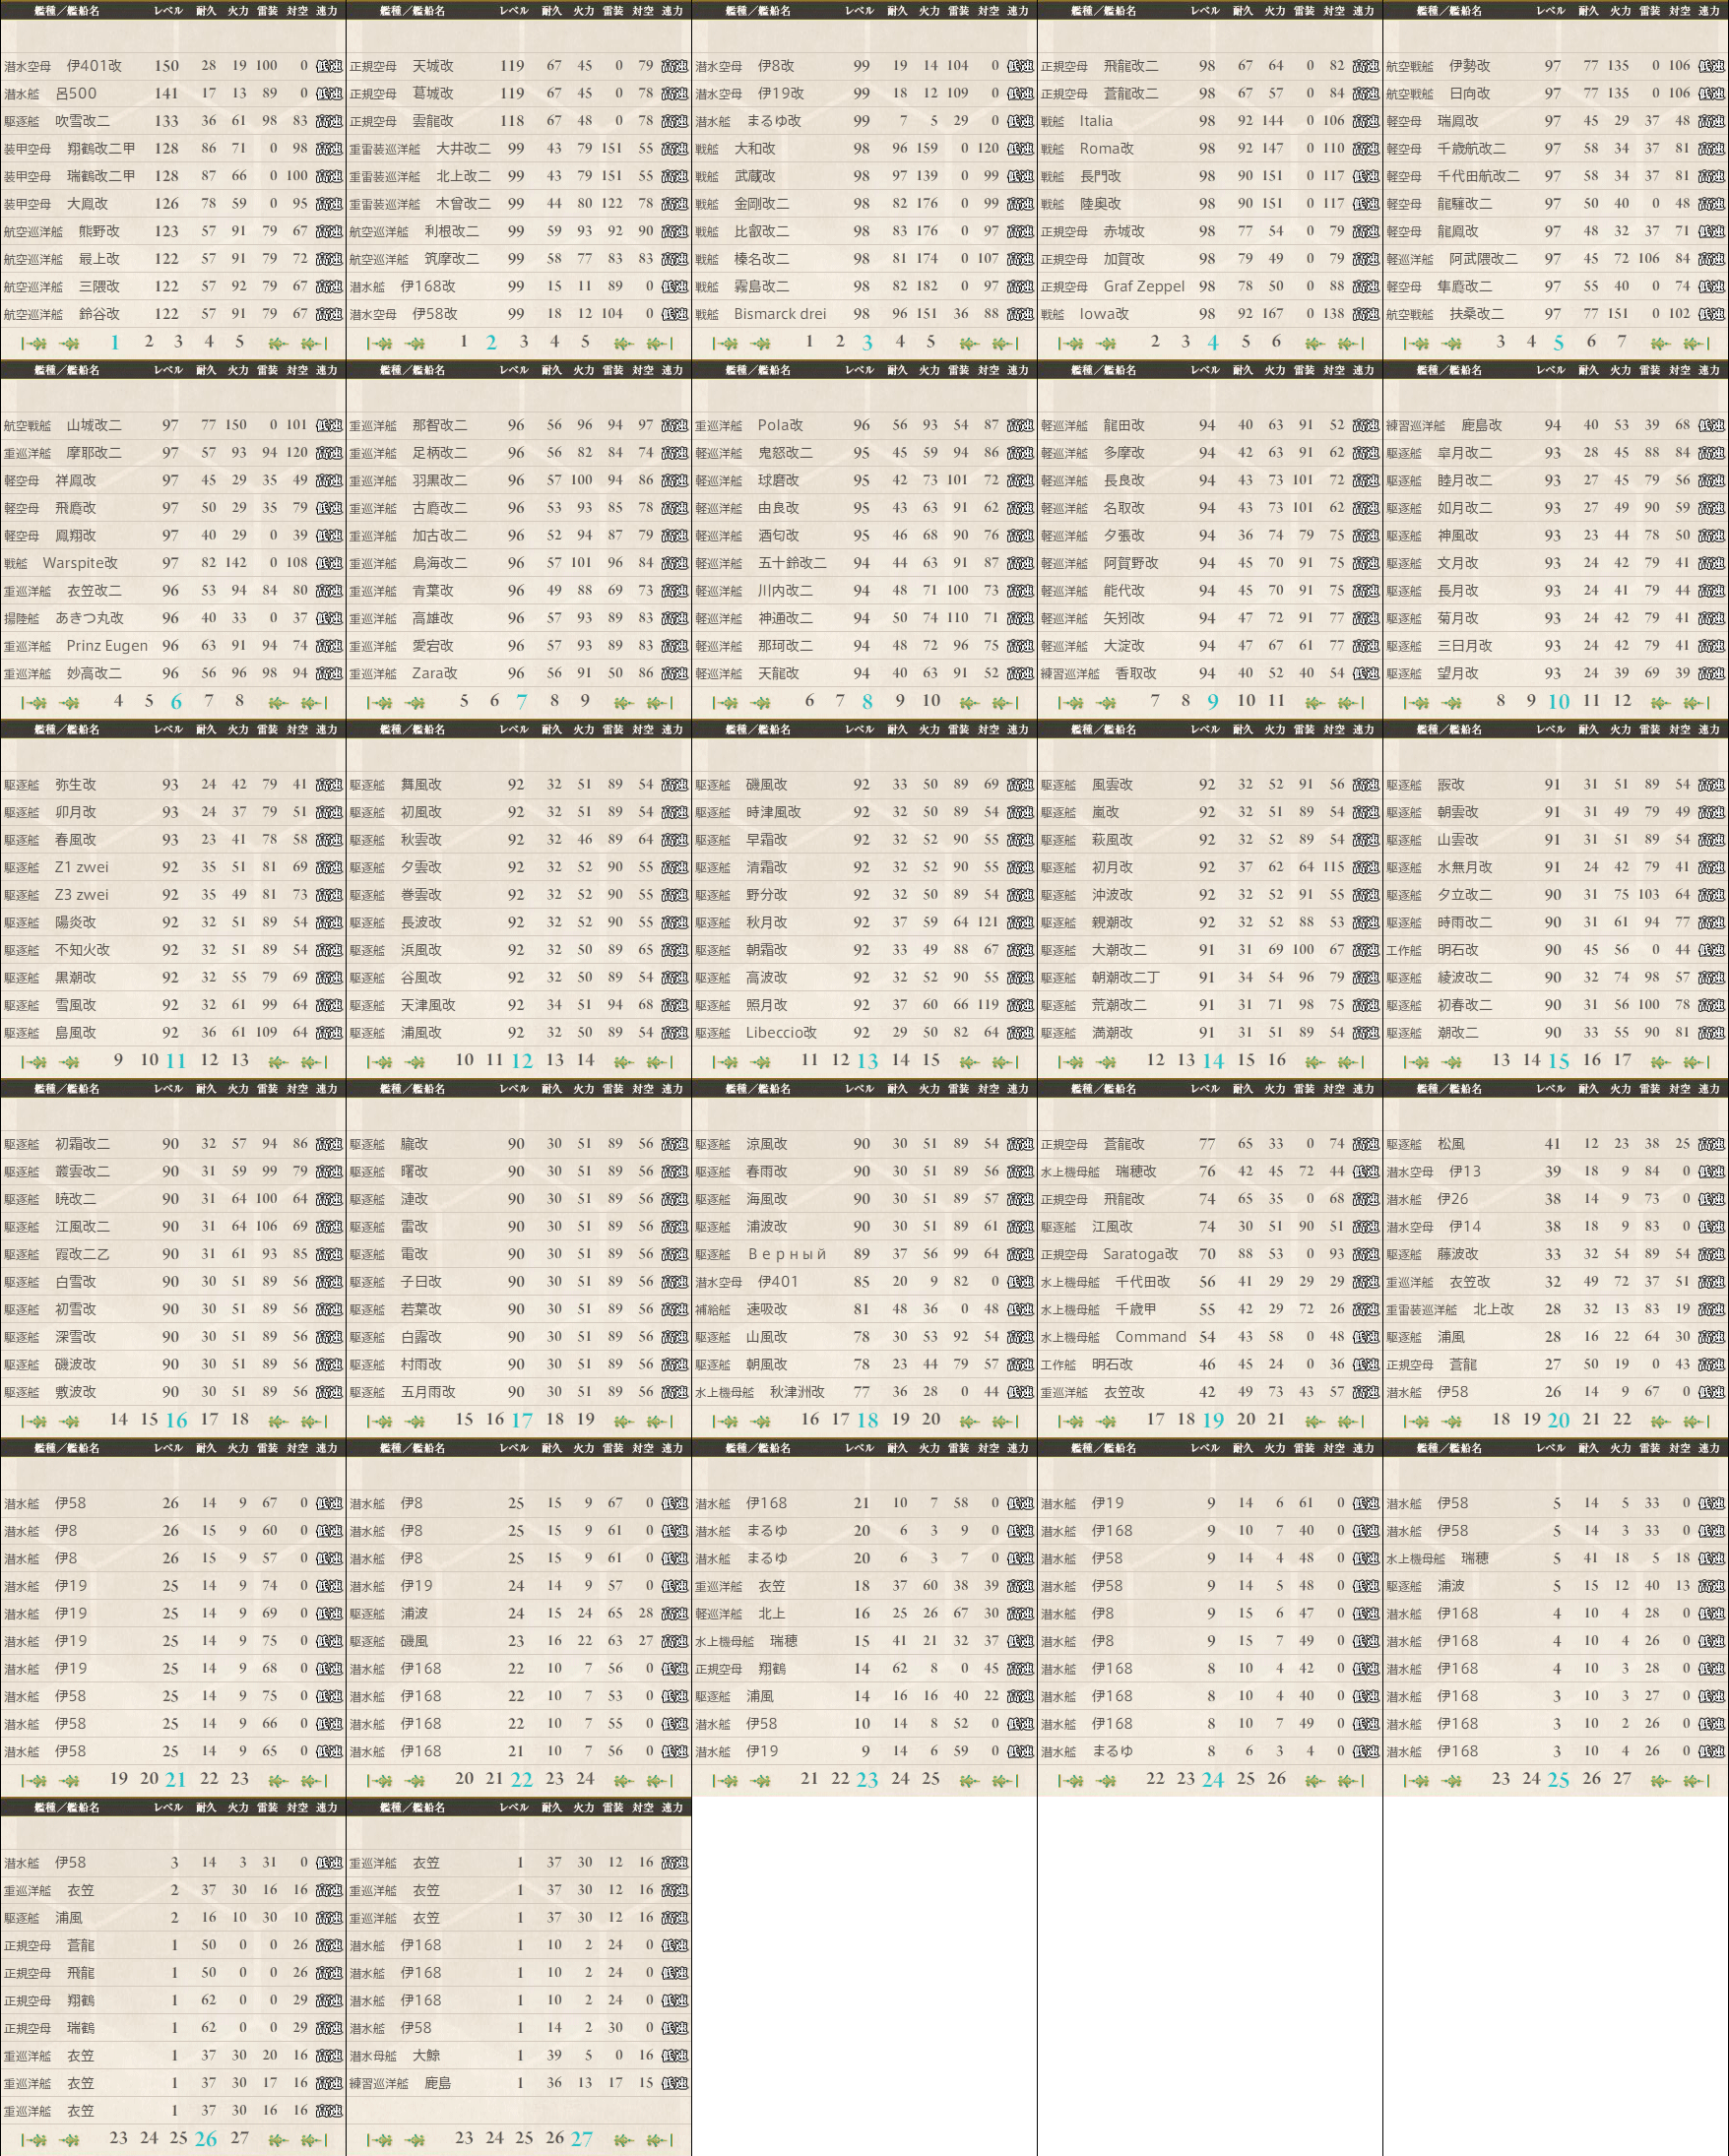 data.kancolle.levelsort.20170312.png